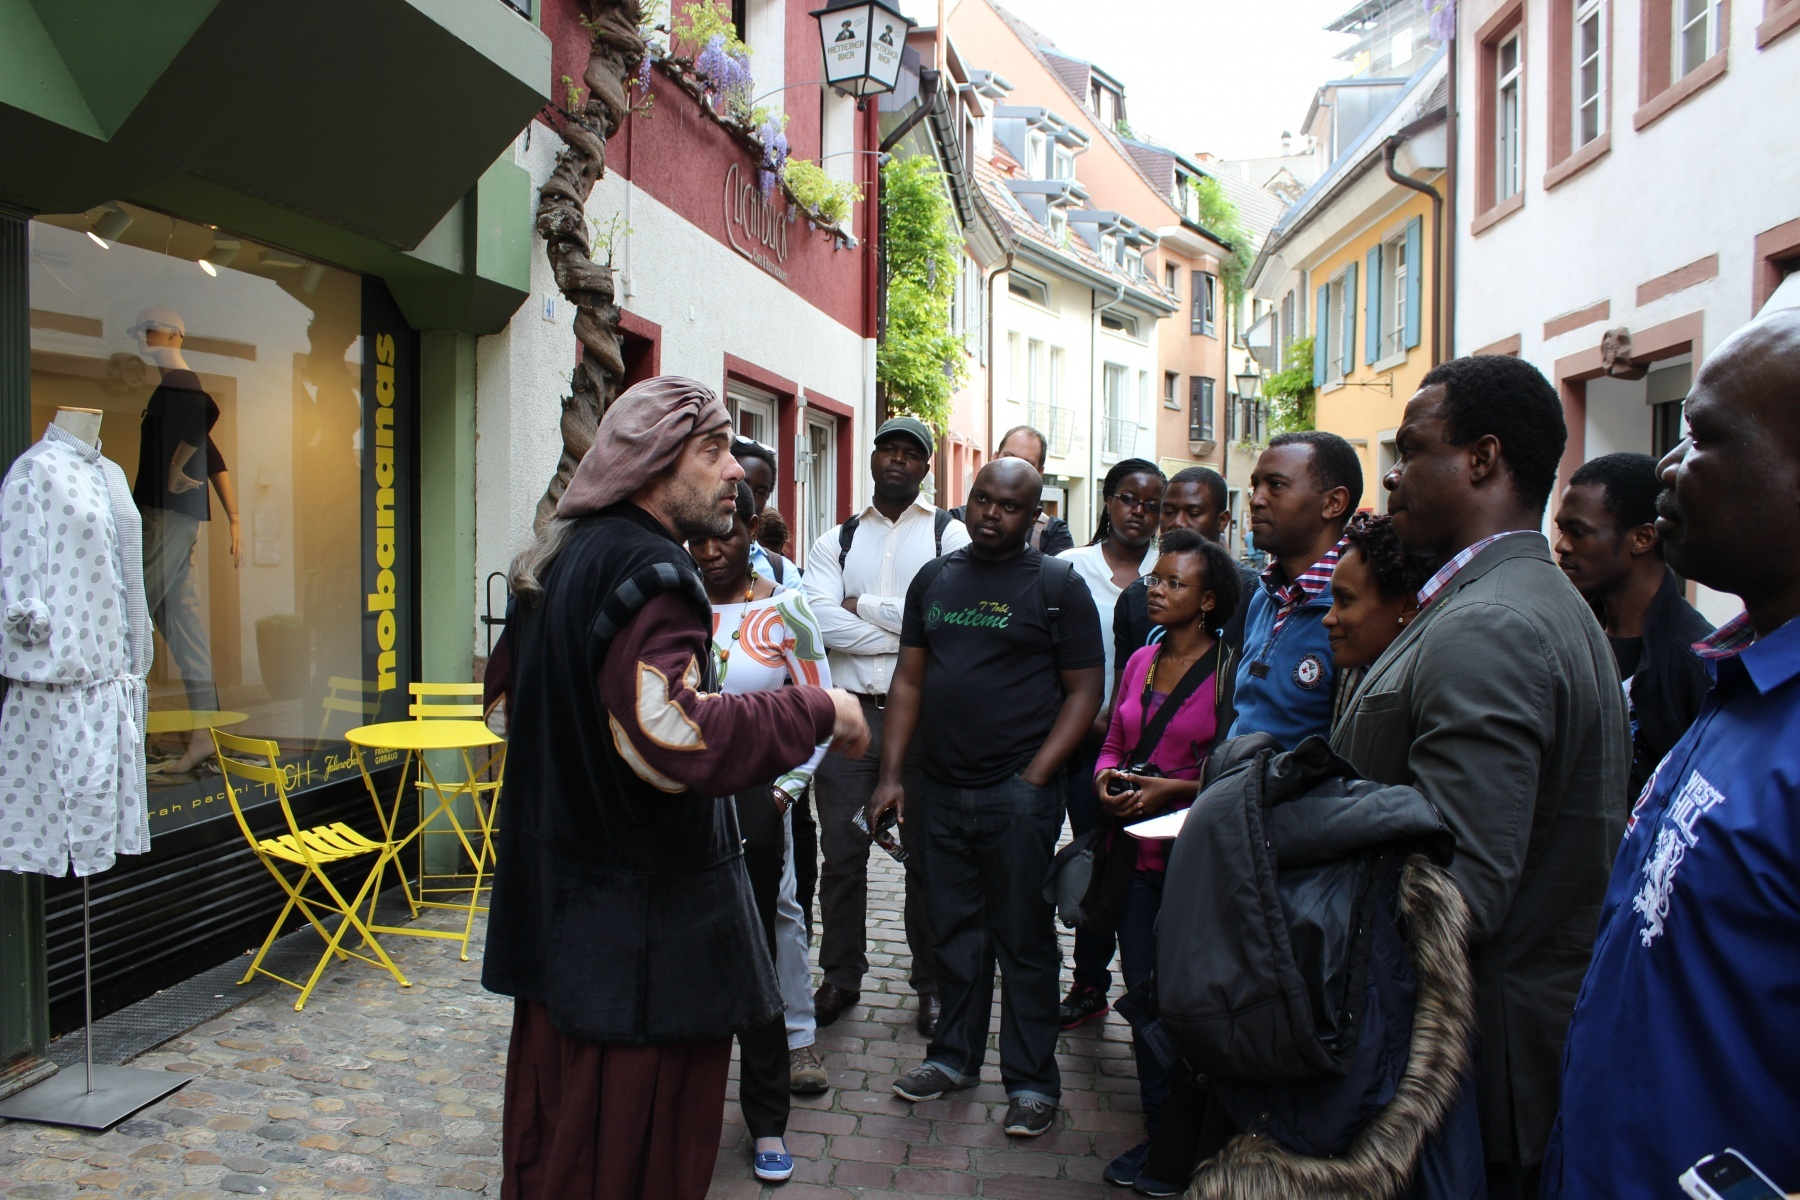 AGGN fellows at a historic city tour in Freiburg/Germany